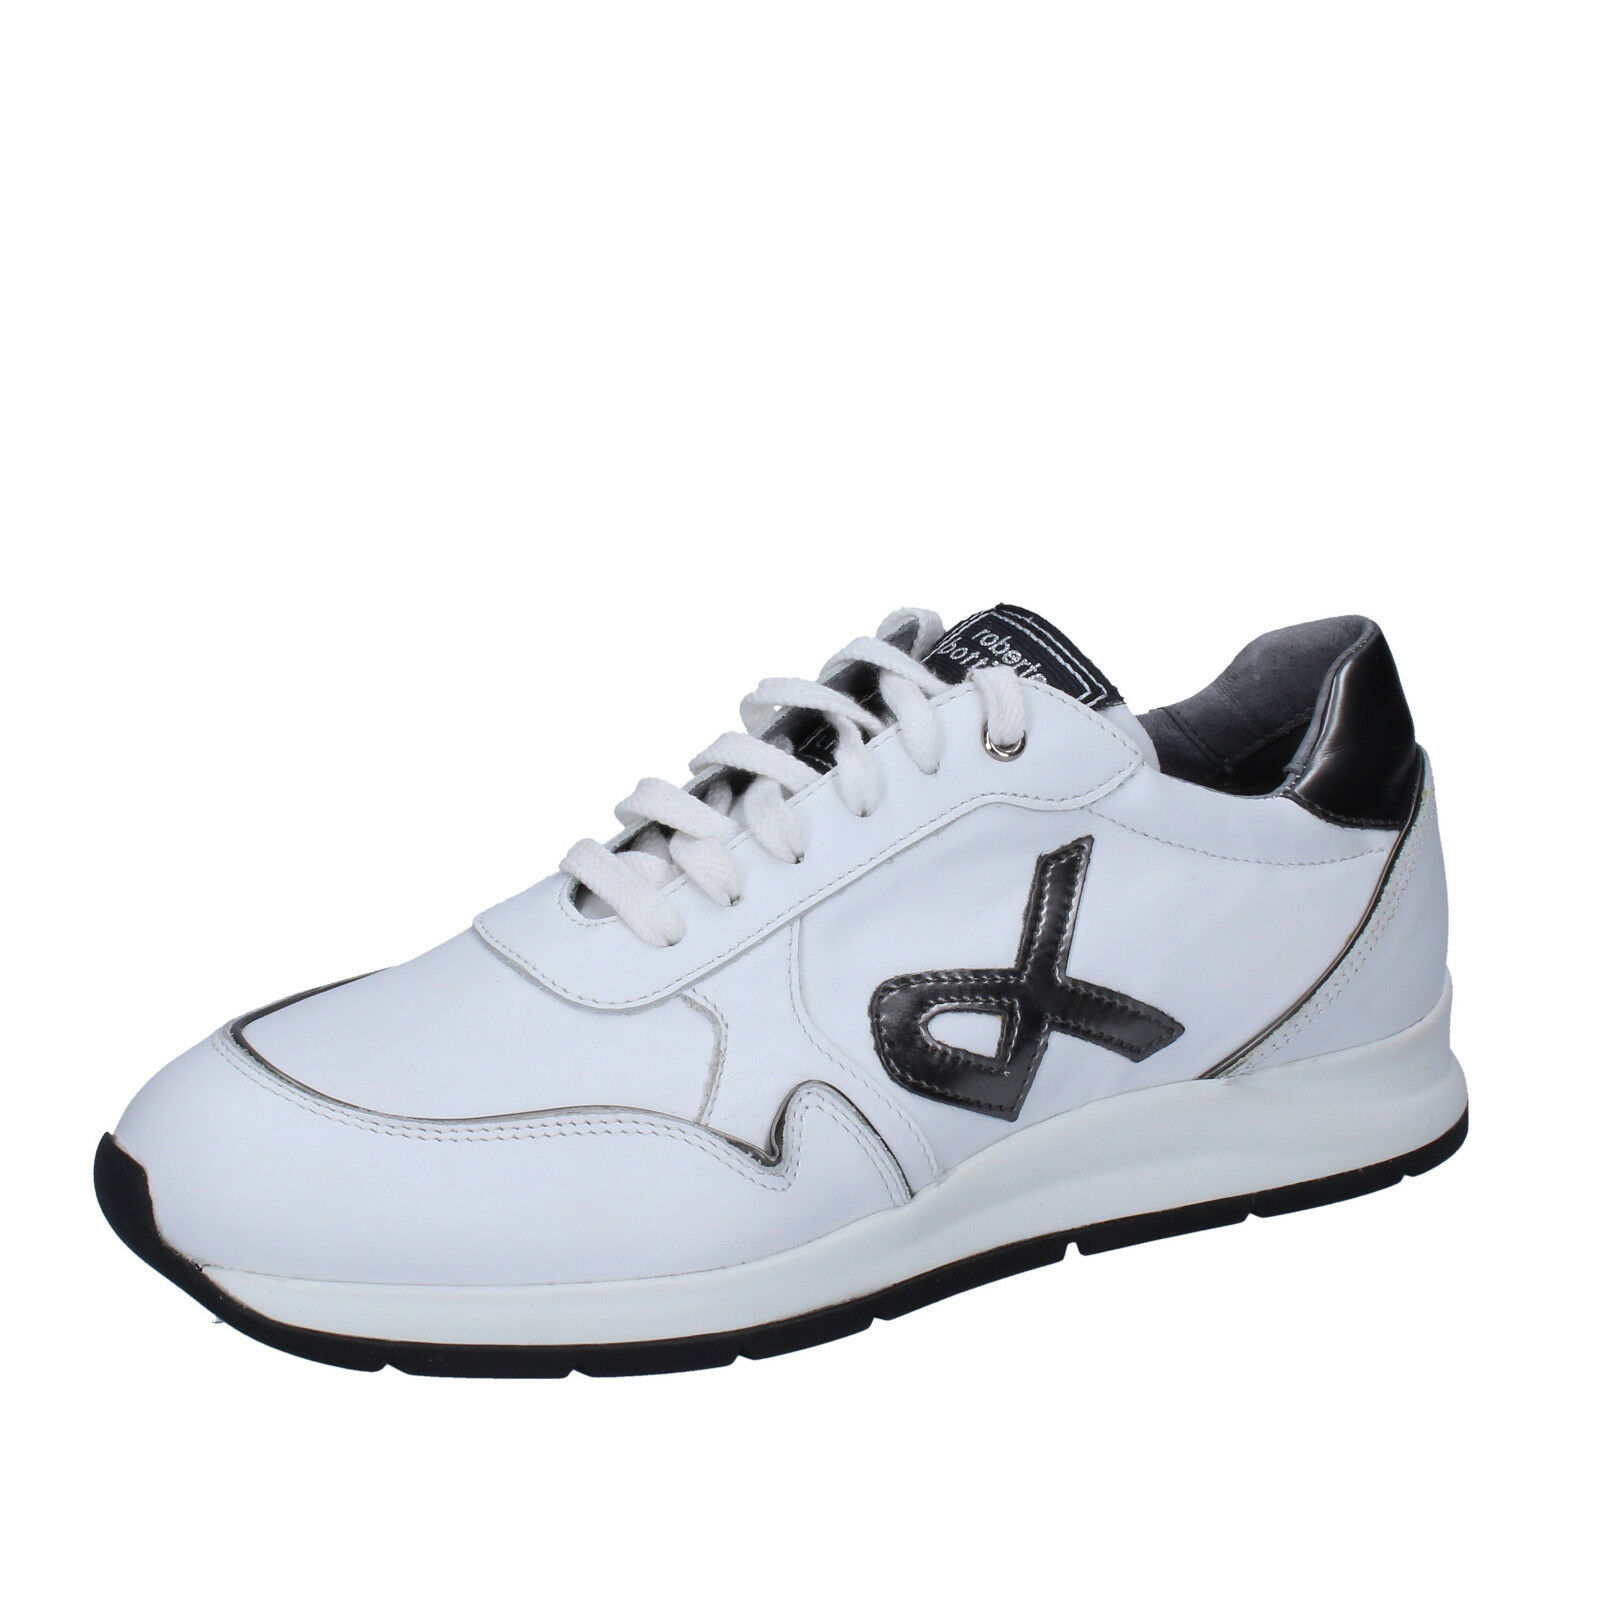 Mens shoes ROBERTO BOTTICELLI 10 (EU 44) sneakers white leather BT542-44